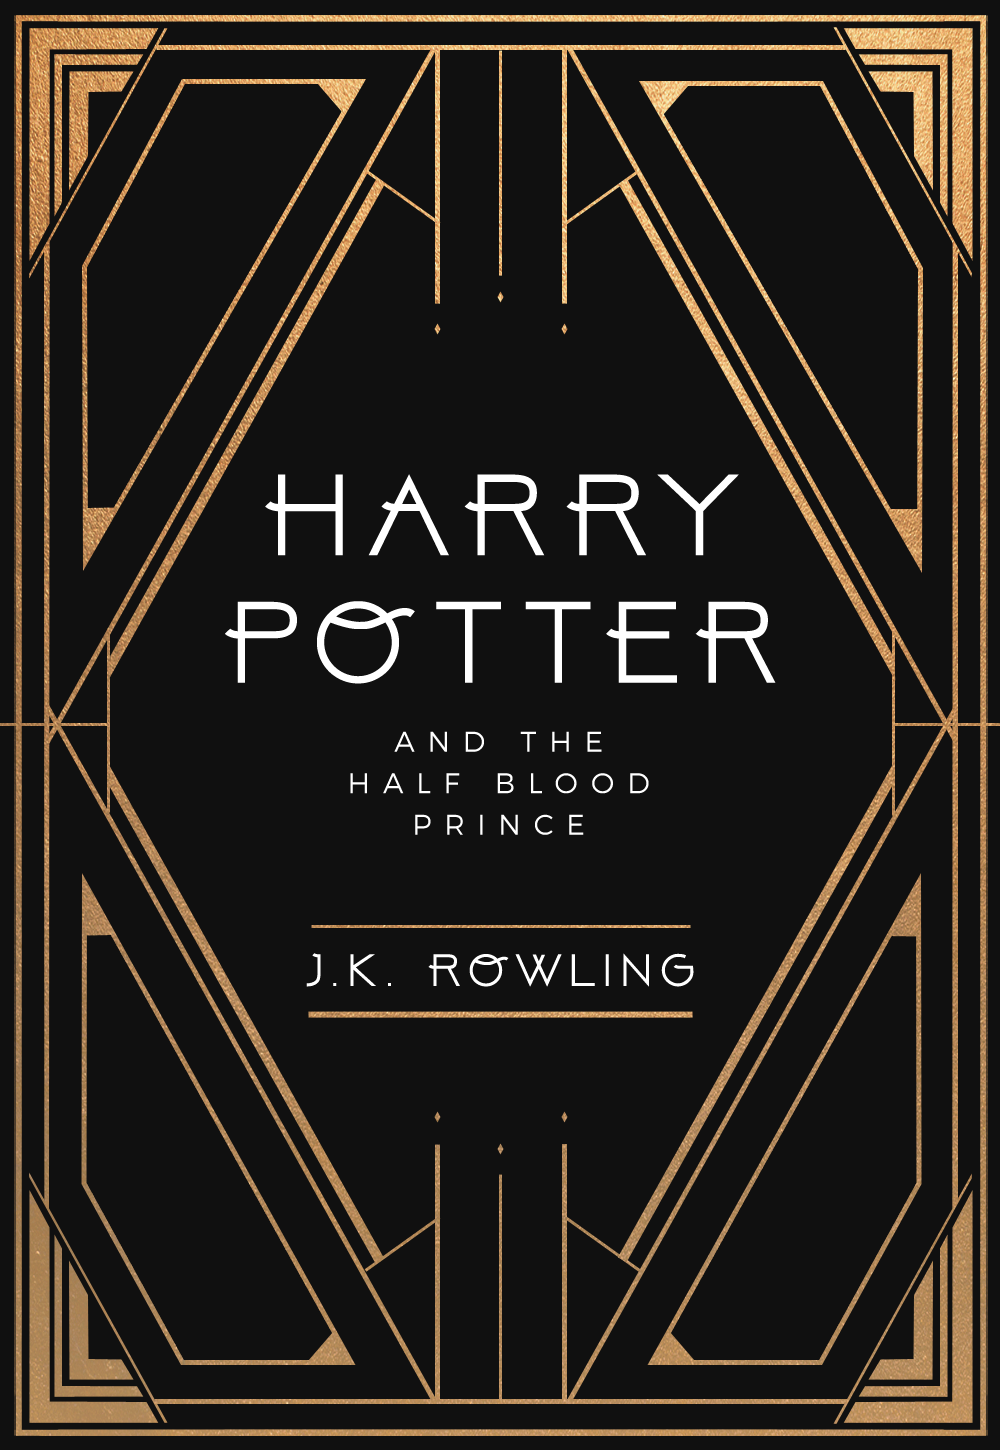 book cover redesign harry potter meets art deco. Black Bedroom Furniture Sets. Home Design Ideas